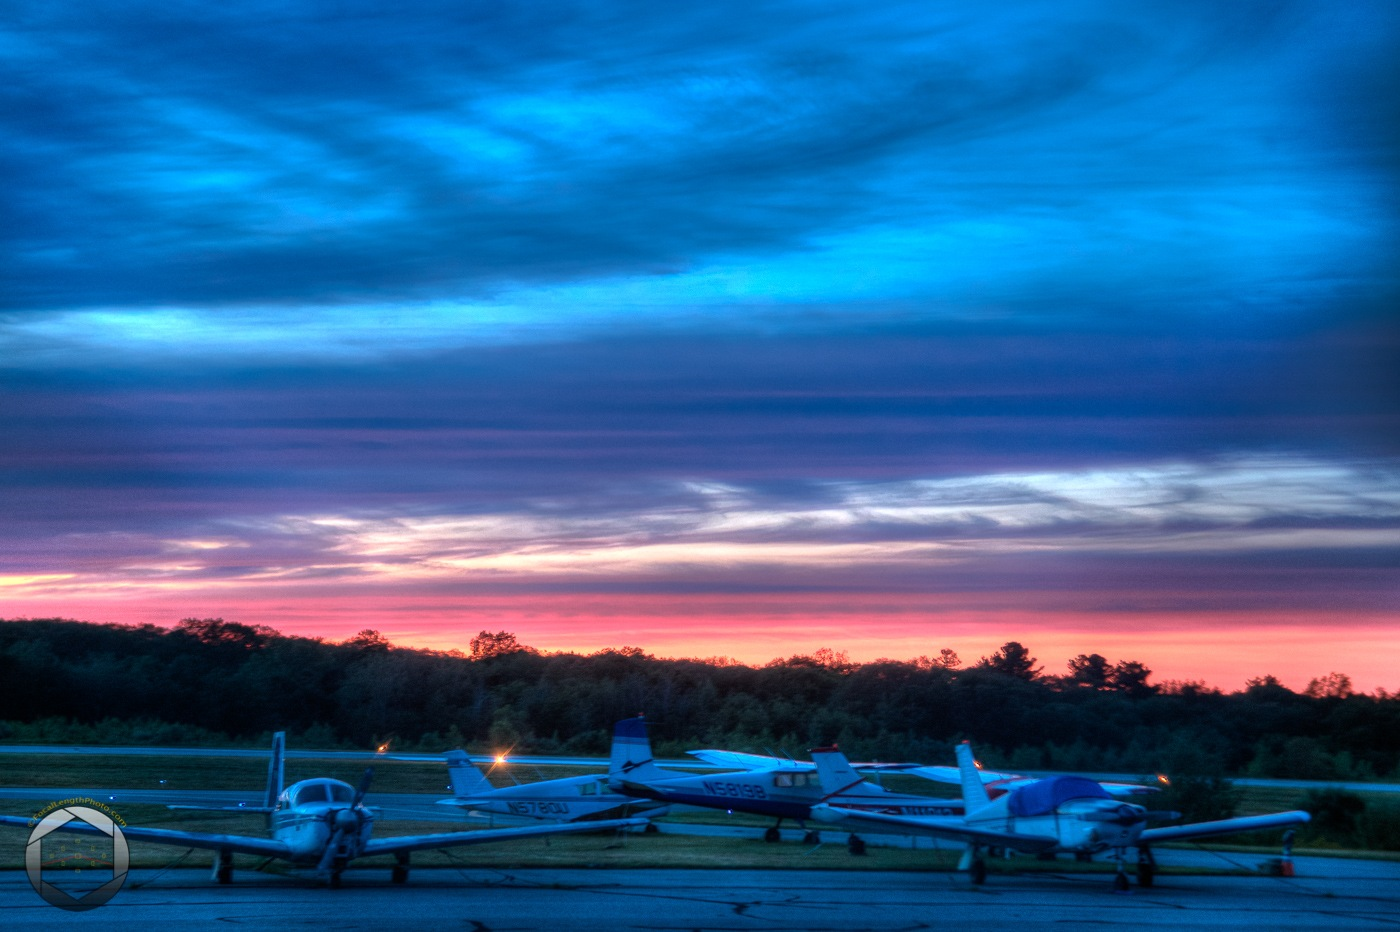 Sunset at the airport by jbrissettephoto